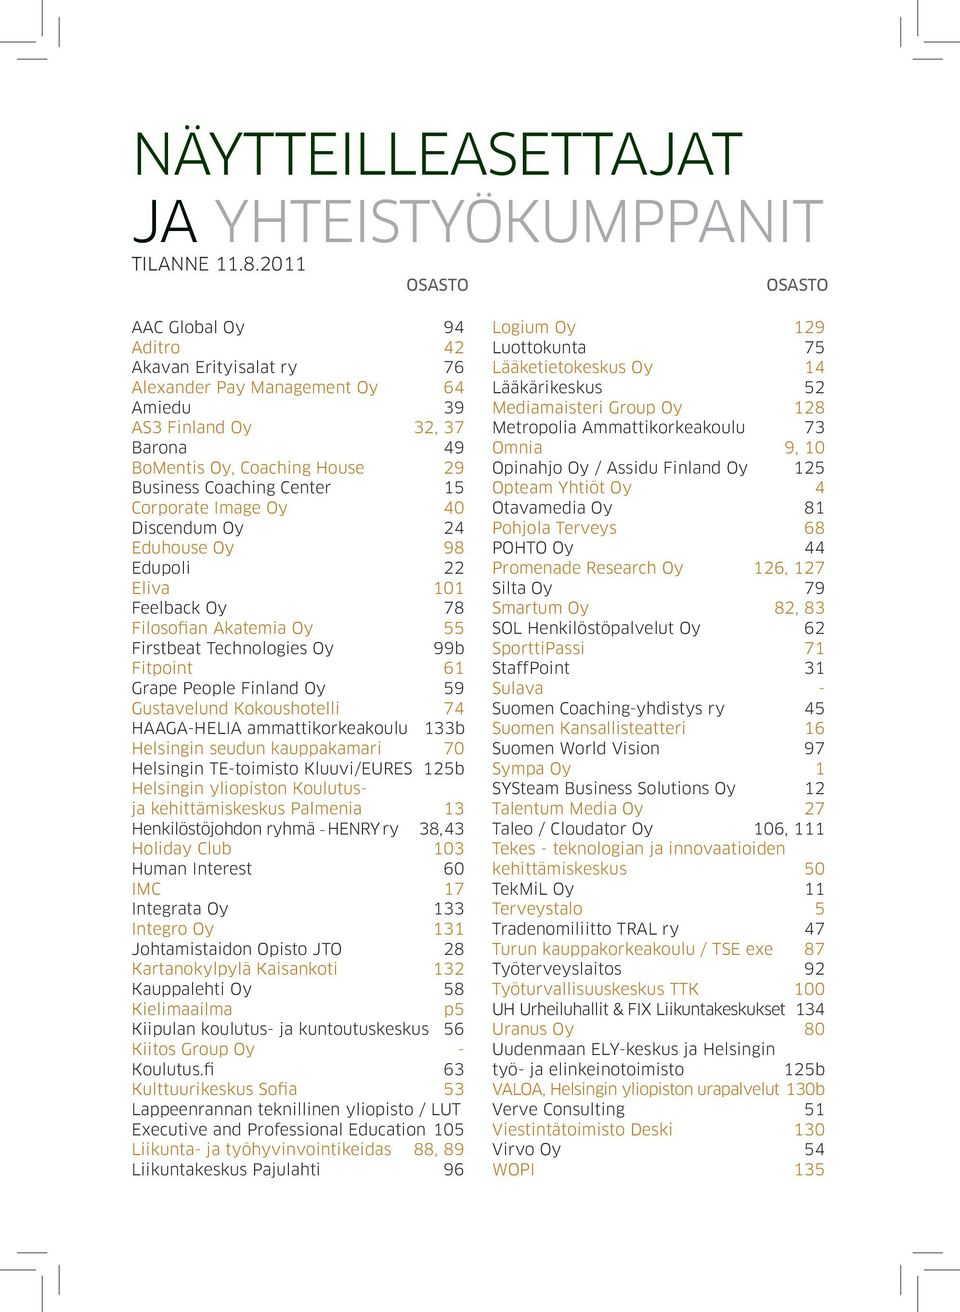 15 Corporate Image Oy 40 Discendum Oy 24 Eduhouse Oy 98 Edupoli 22 Eliva 101 Feelback Oy 78 Filosofian Akatemia Oy 55 Firstbeat Technologies Oy 99b Fitpoint 61 Grape People Finland Oy 59 Gustavelund